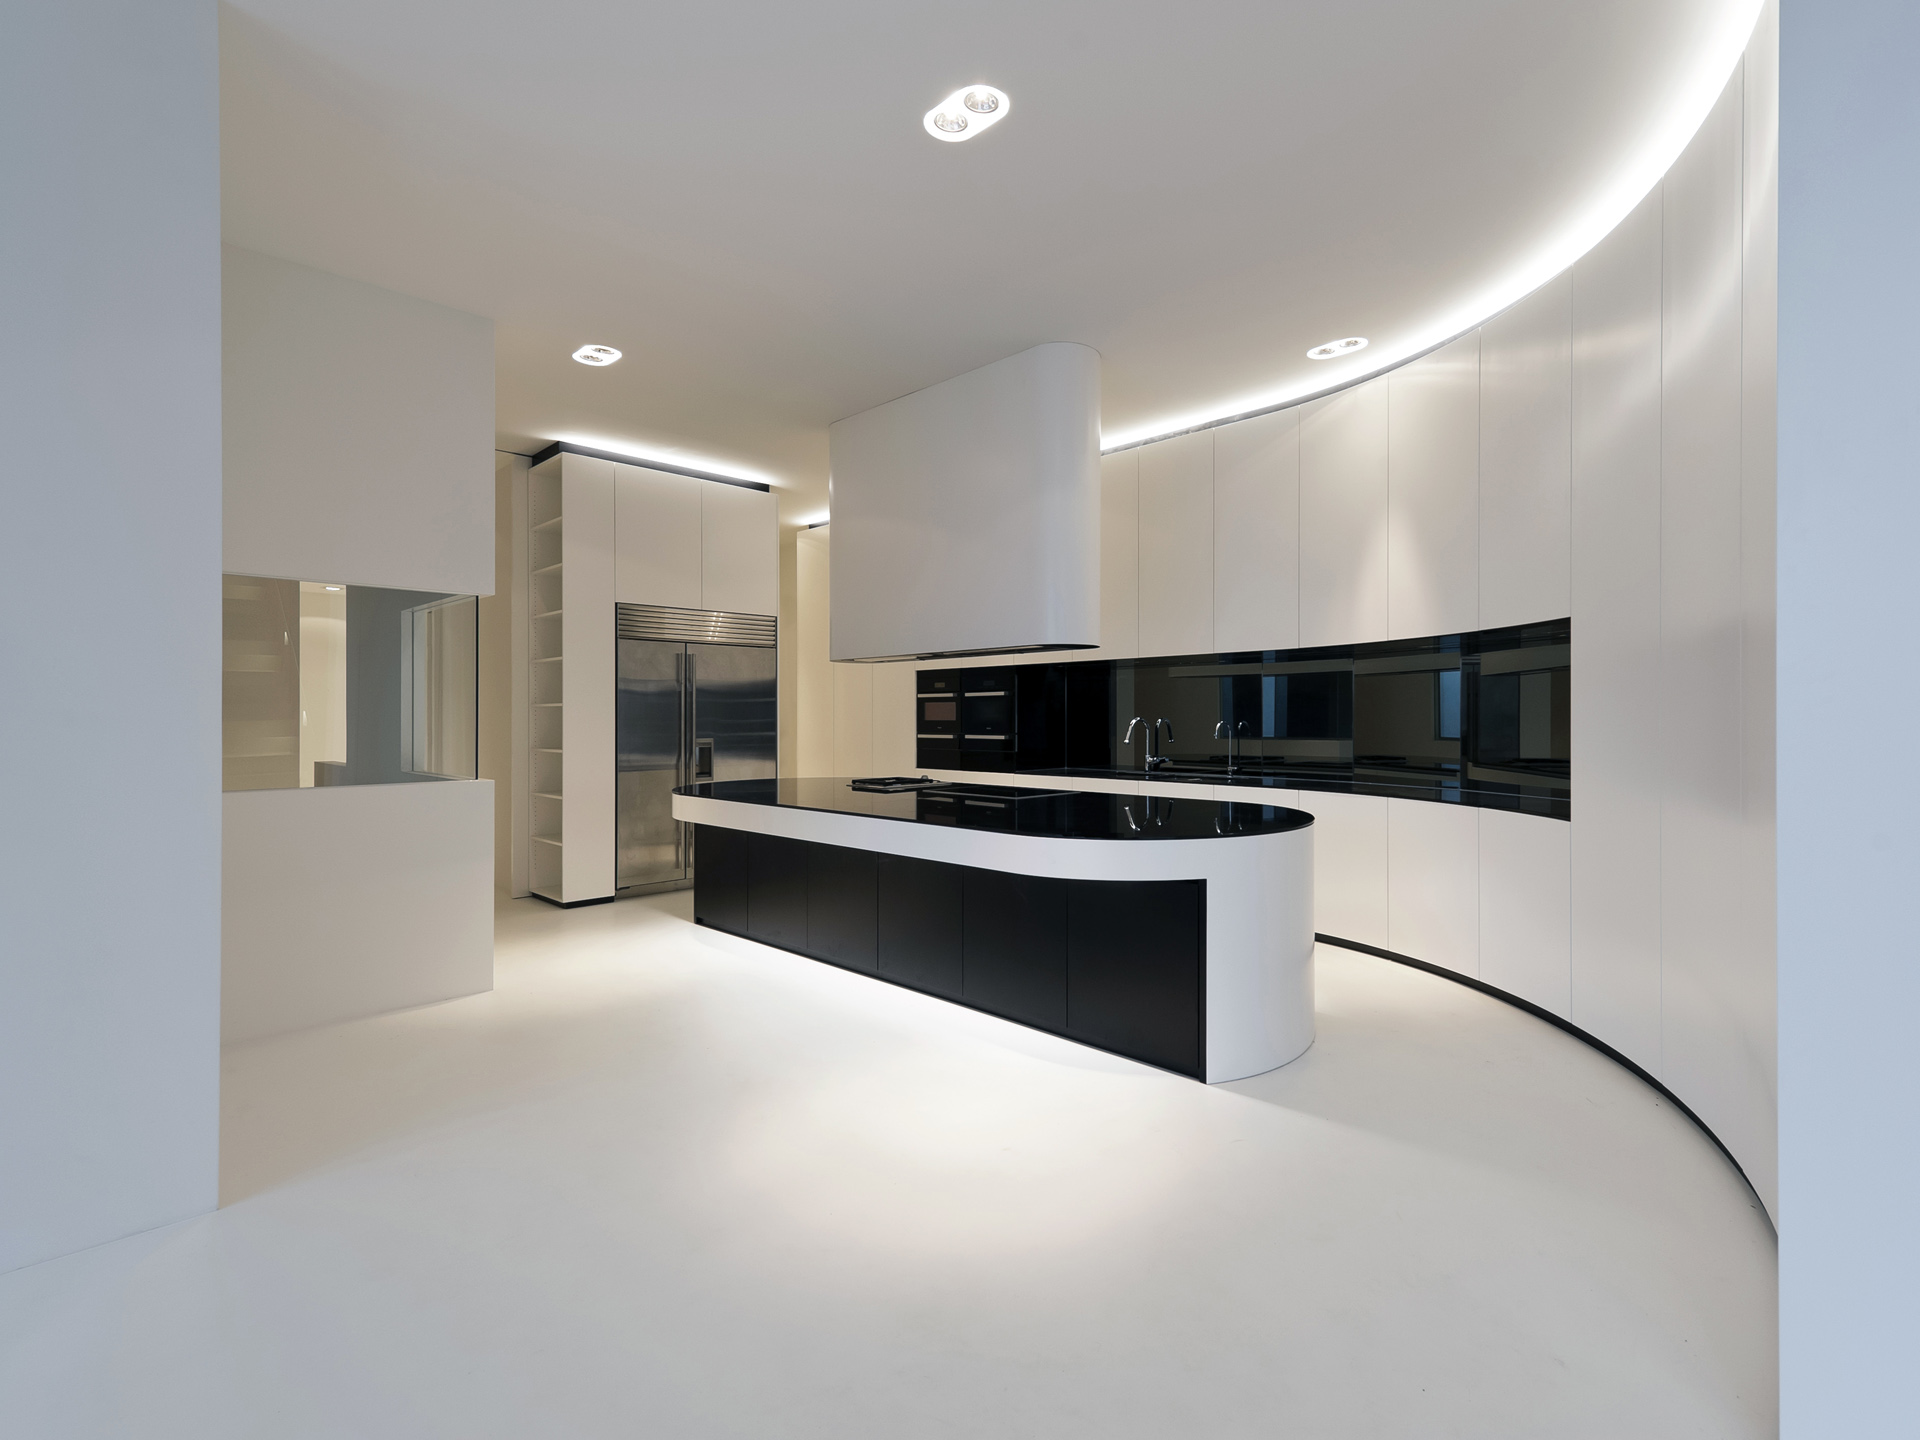 kitchen is also designed by 123DV